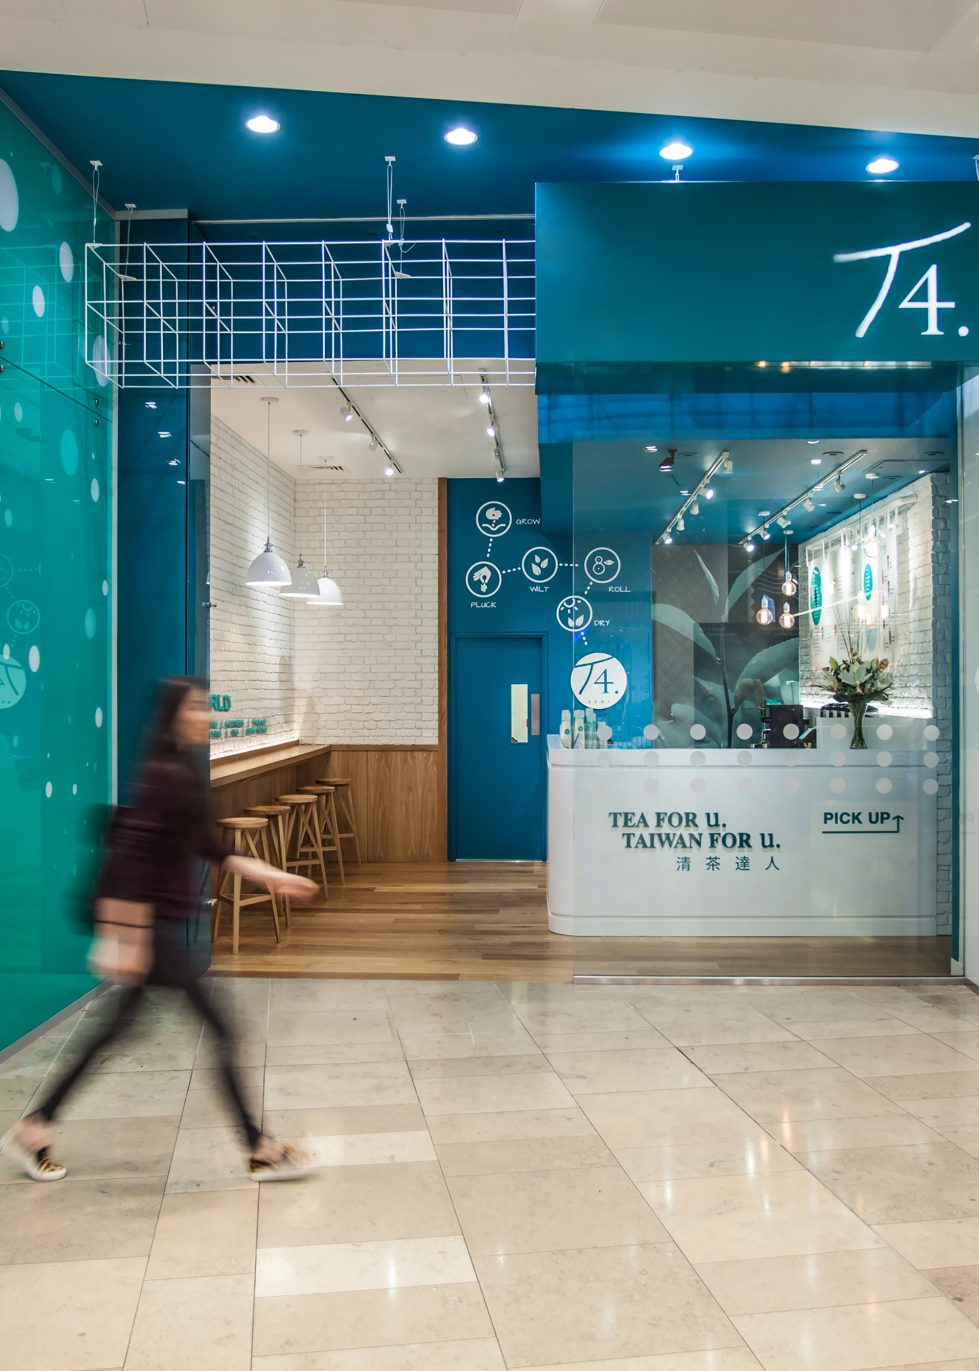 design clarity, shopfront design, tea store, soft drinks, metal canopy, turquoise paint, welcoming entrance, exposed lighting